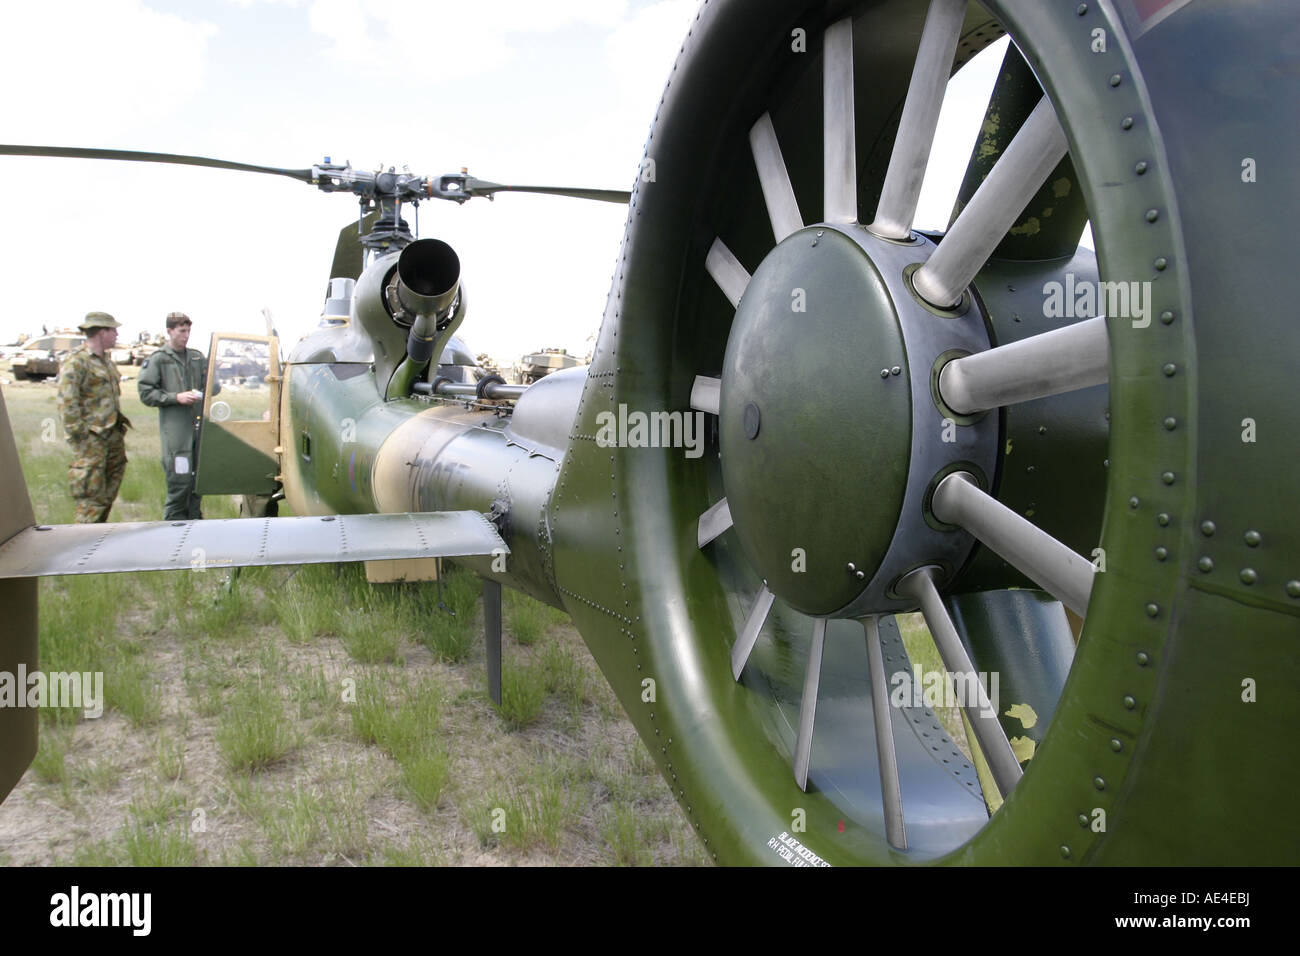 Tail rotor of Gazelle helicopter - Stock Image